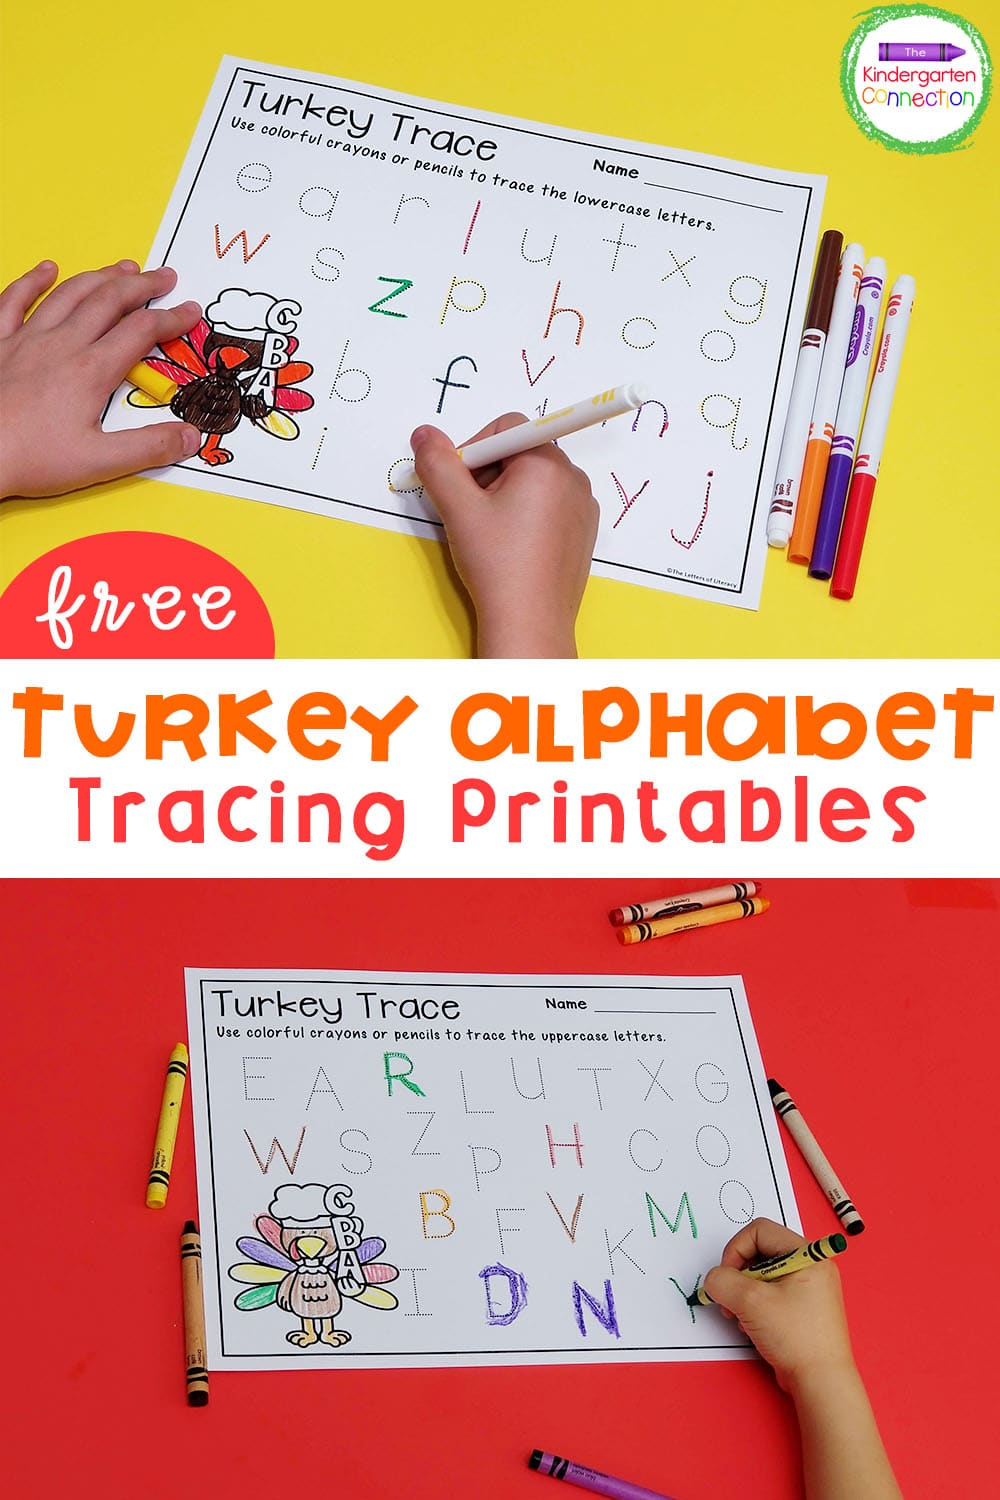 Grab these FREE turkey themed alphabet tracing printables to add some fall fun to your Pre-K and Kindergarten literacy centers!